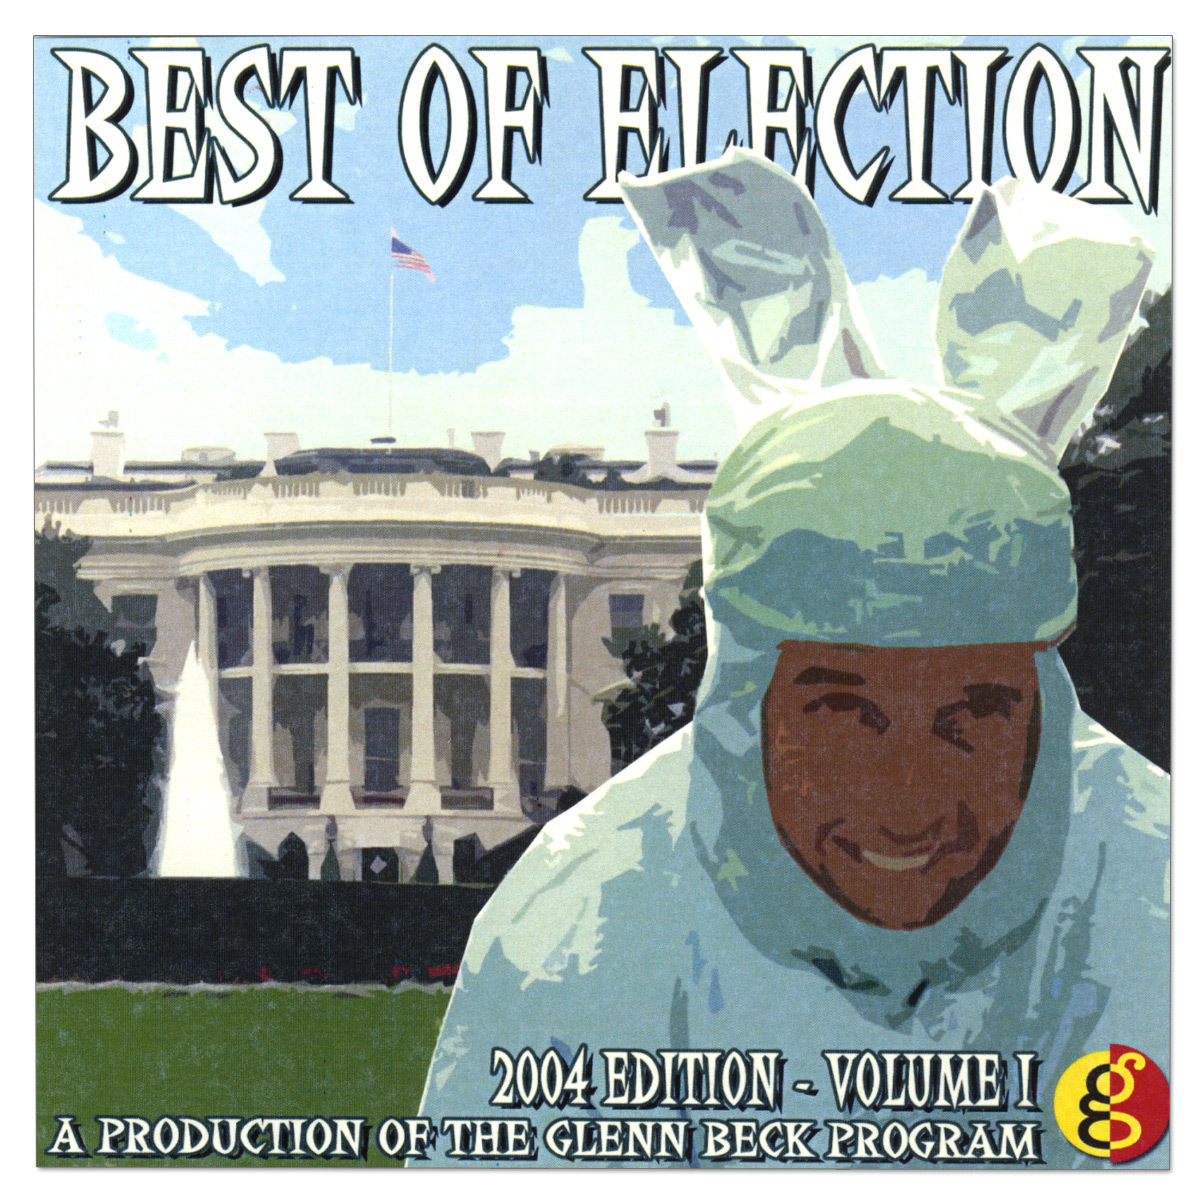 Glenn Beck Best Of Election 2004 - Volume 1